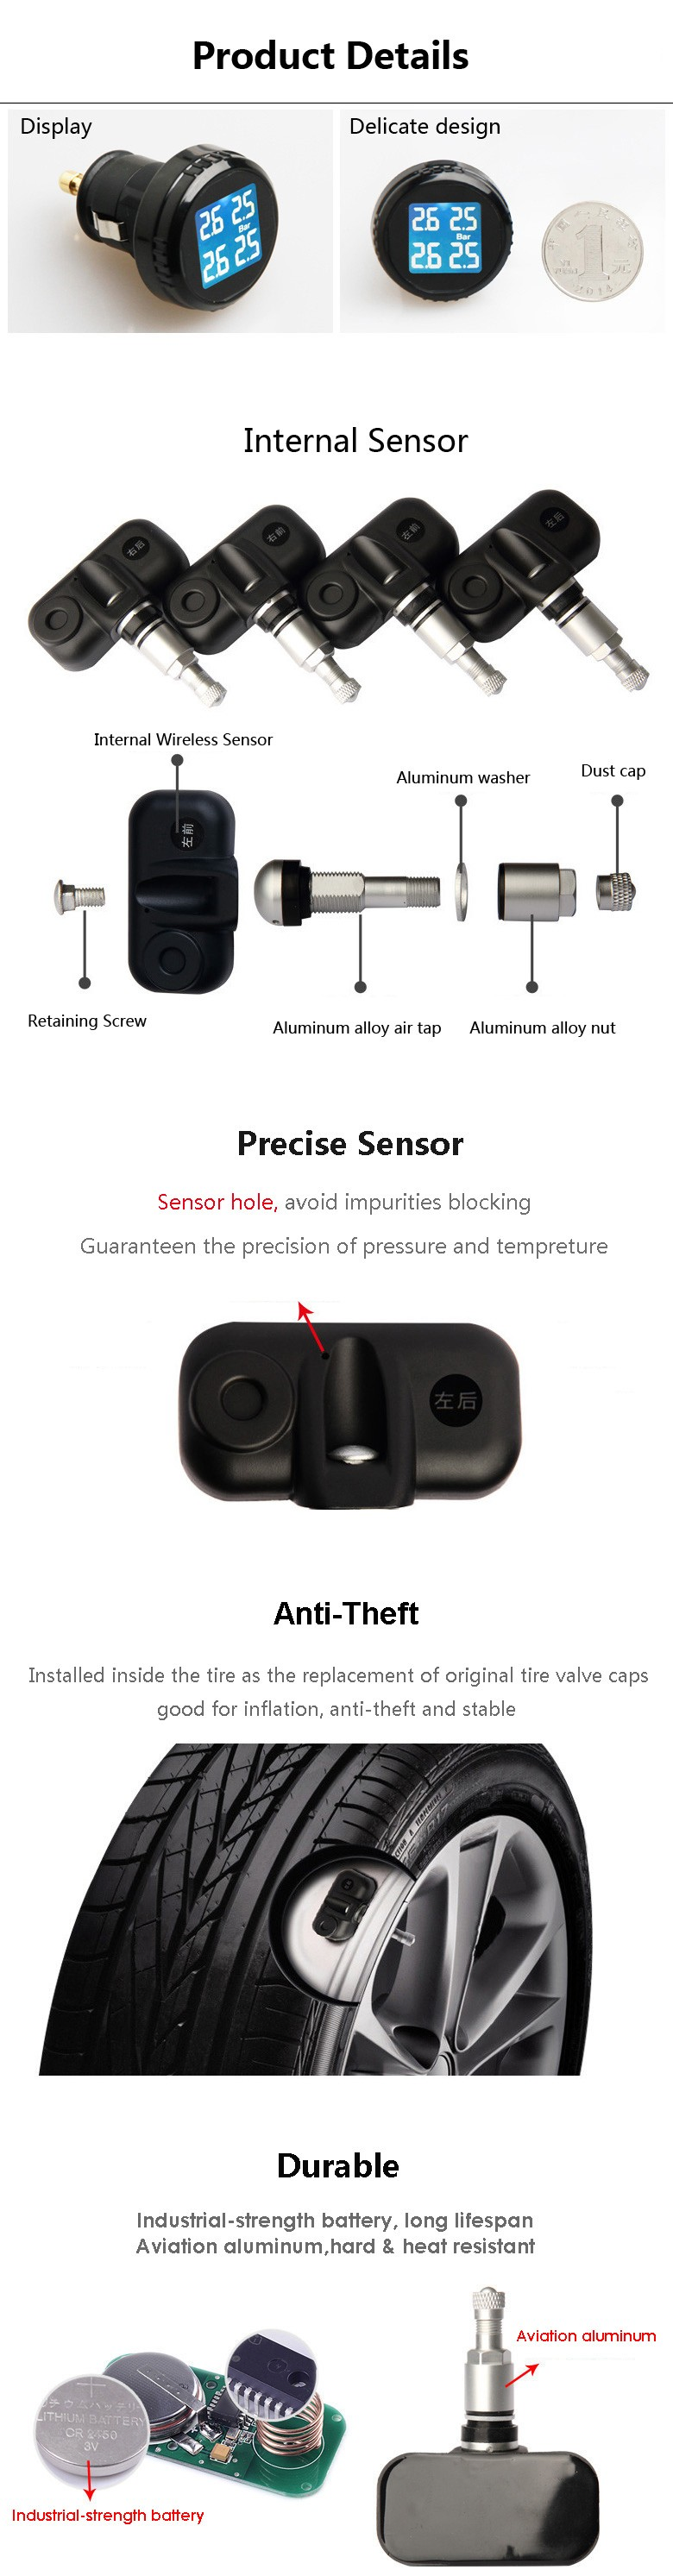 Car Tyre Pressure Monitoring System with 4 Sensors Internal Wireless TPMS Car Safety Products Cigarette Lighter Adapter